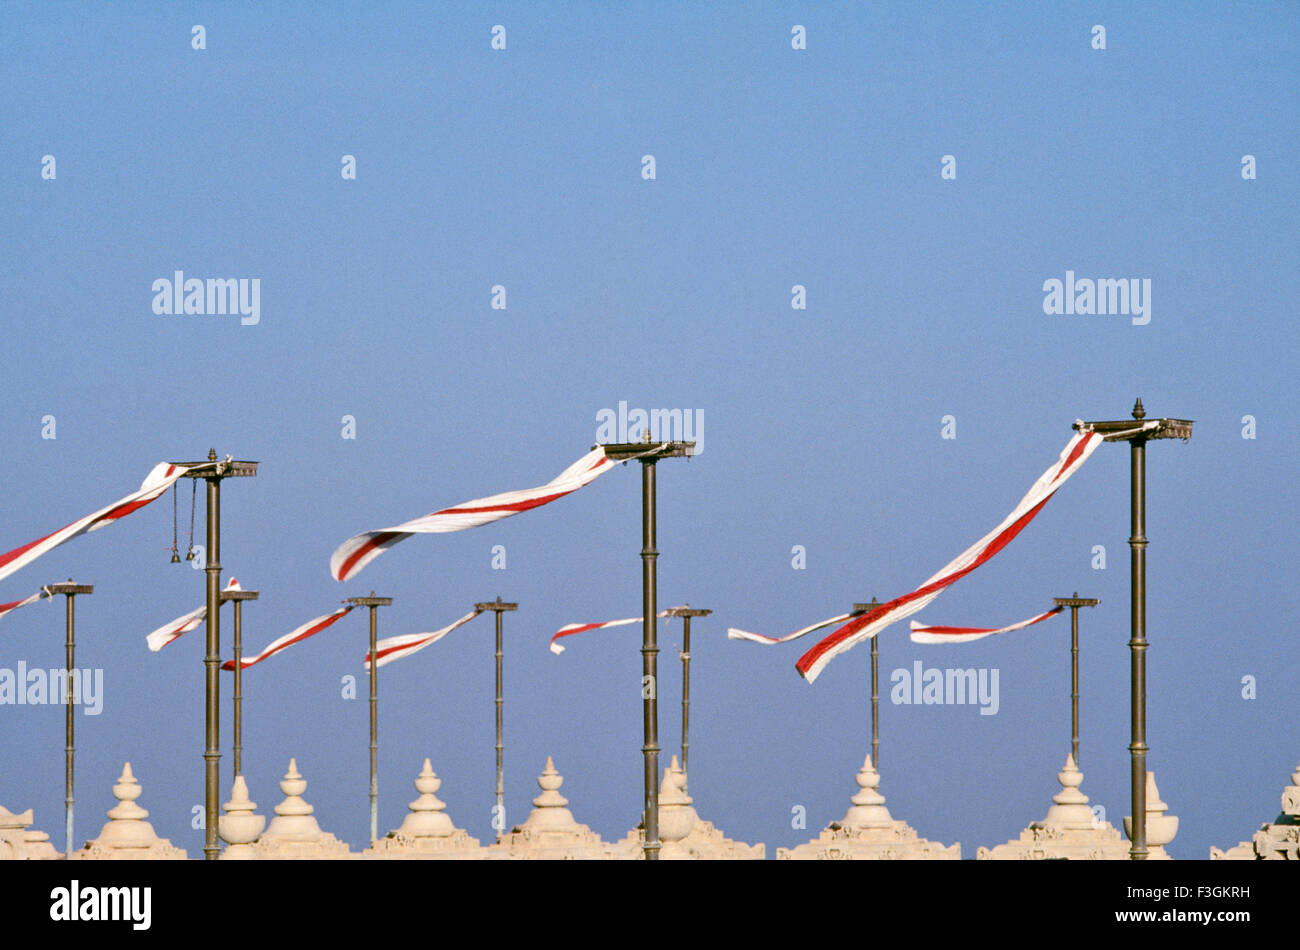 Red and white flags fluttering above Jain temples in Palitana ; Gujarat ; India - Stock Image